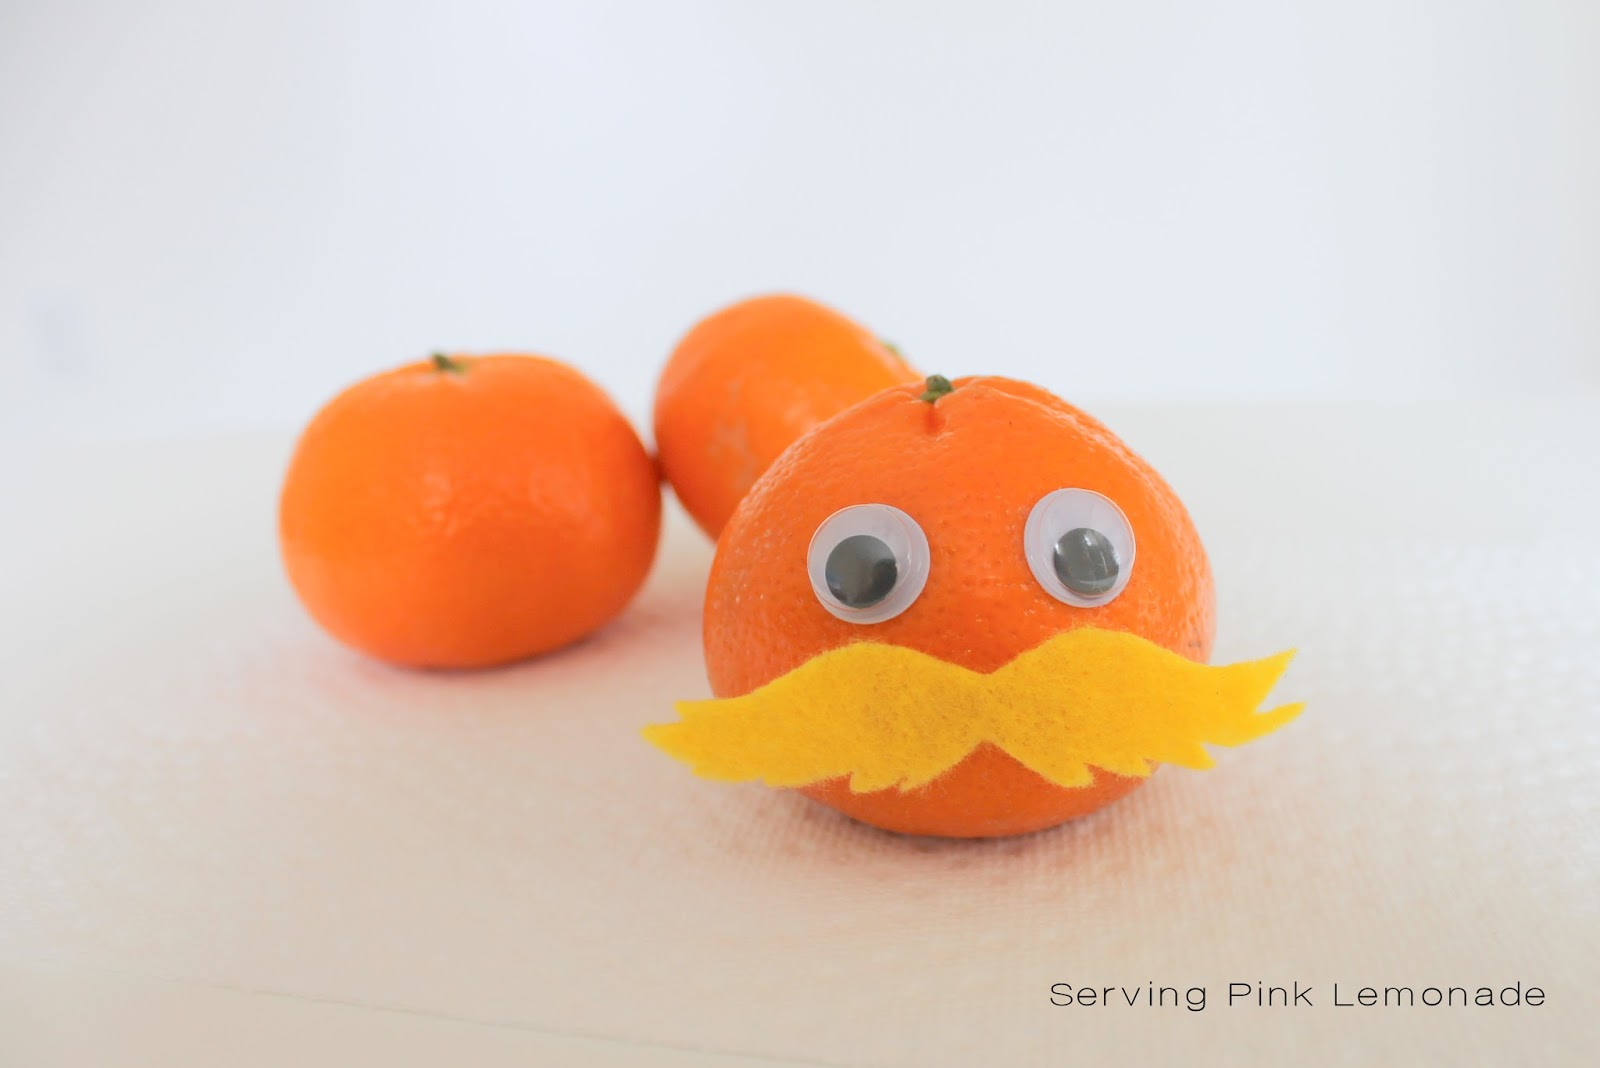 Simple and Healthy Dr. Seuss Lunch. The Lorax Orange.